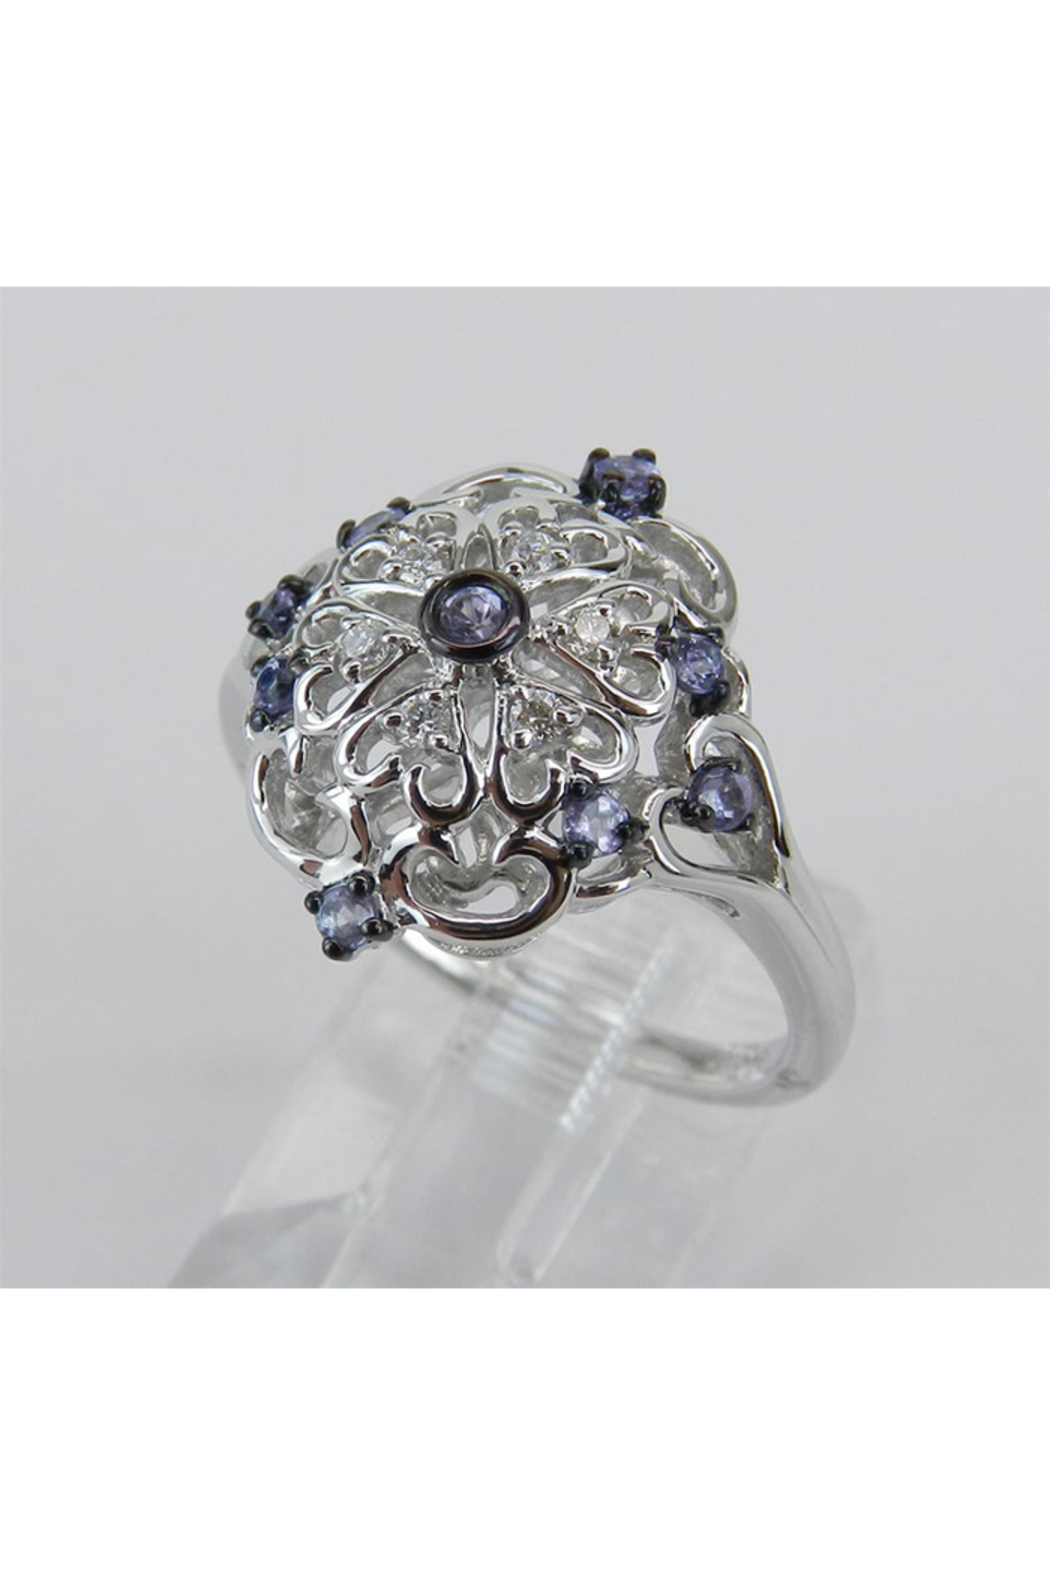 Margolin & Co Vintage Reproduction Style White Gold Diamond and Tanzanite Cocktail Cluster Ring Size 6.75 FREE Sizing - Side Cropped Image